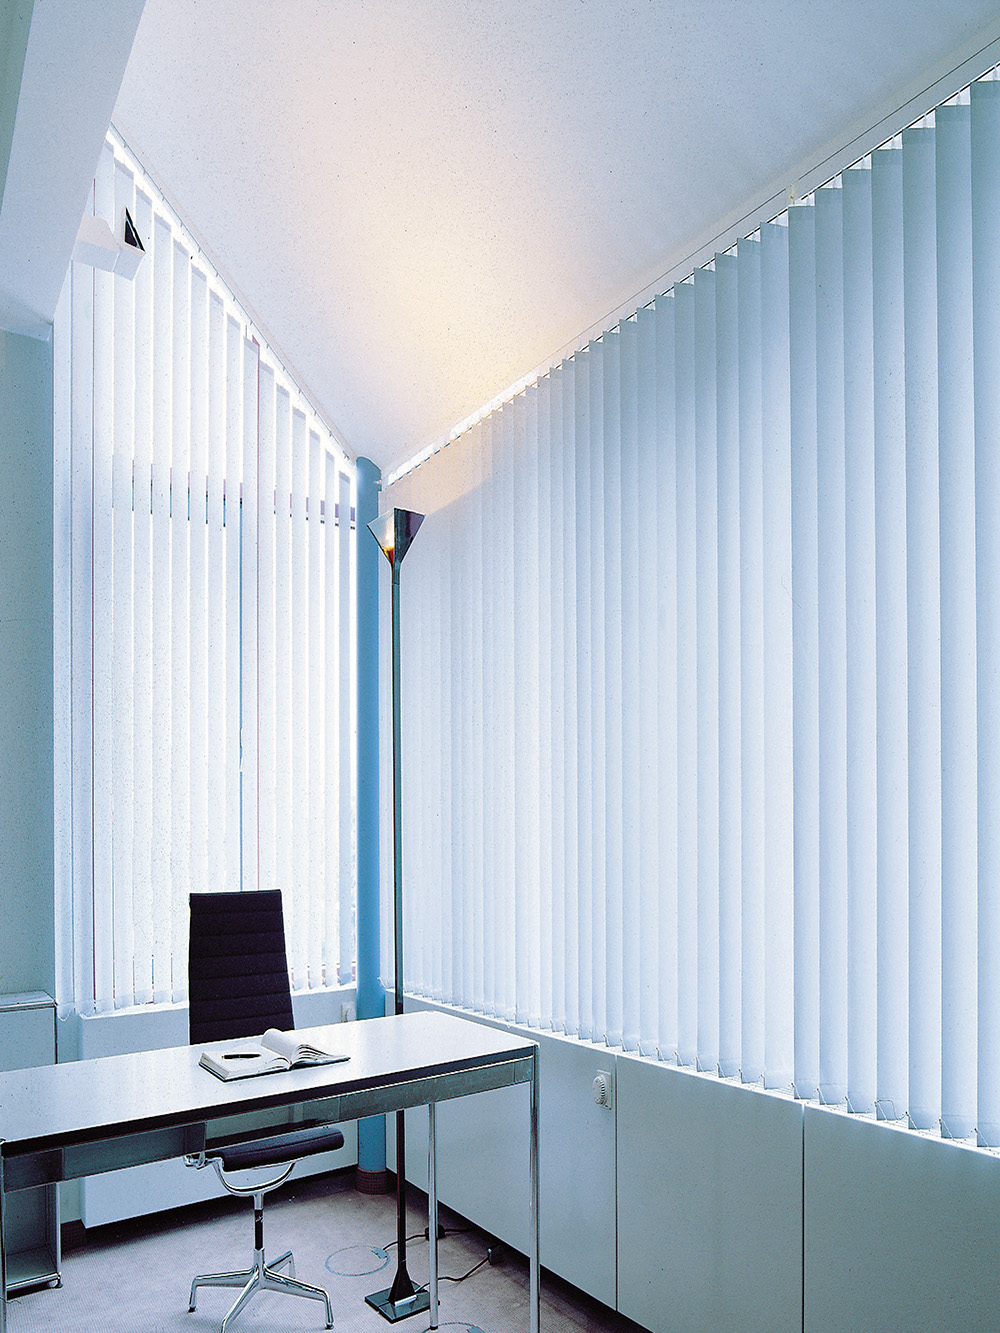 Start-up Offices: Glazing Over the Big Prices with Window Blinds